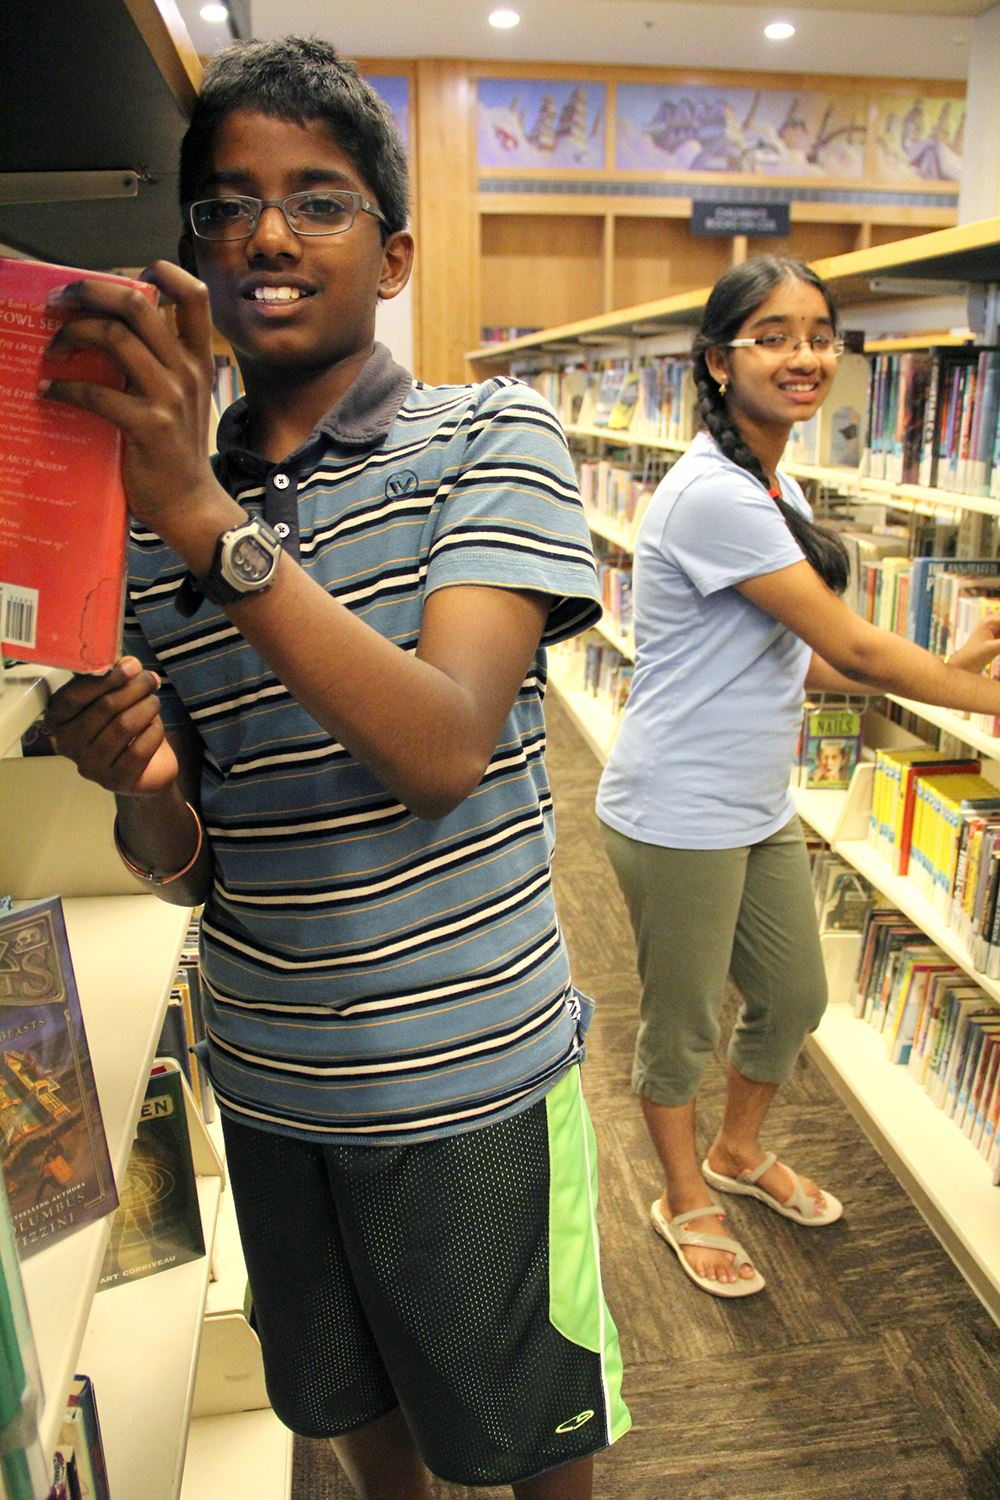 Photo of a young man and a young woman smiling and shelving library materials.